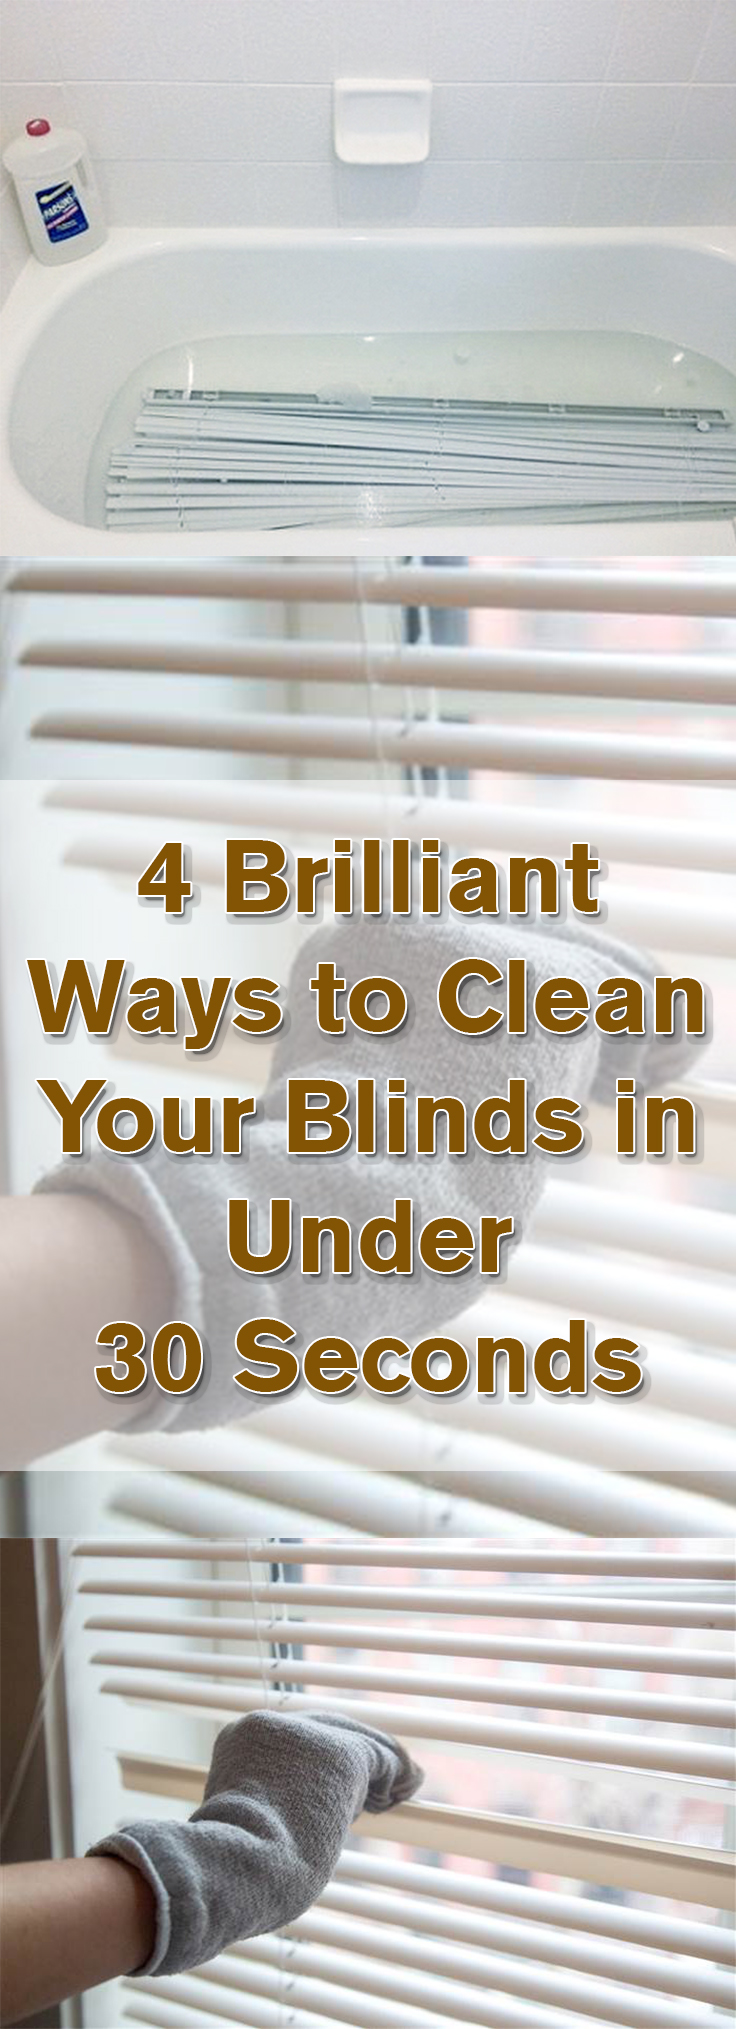 Cleaning, how to clean window treatments, cleaning hacks, cleaning tips, clean house, popular pin, DIY cleaning, DIY cleaning hacks, clean your blinds, how to clean your blinds.